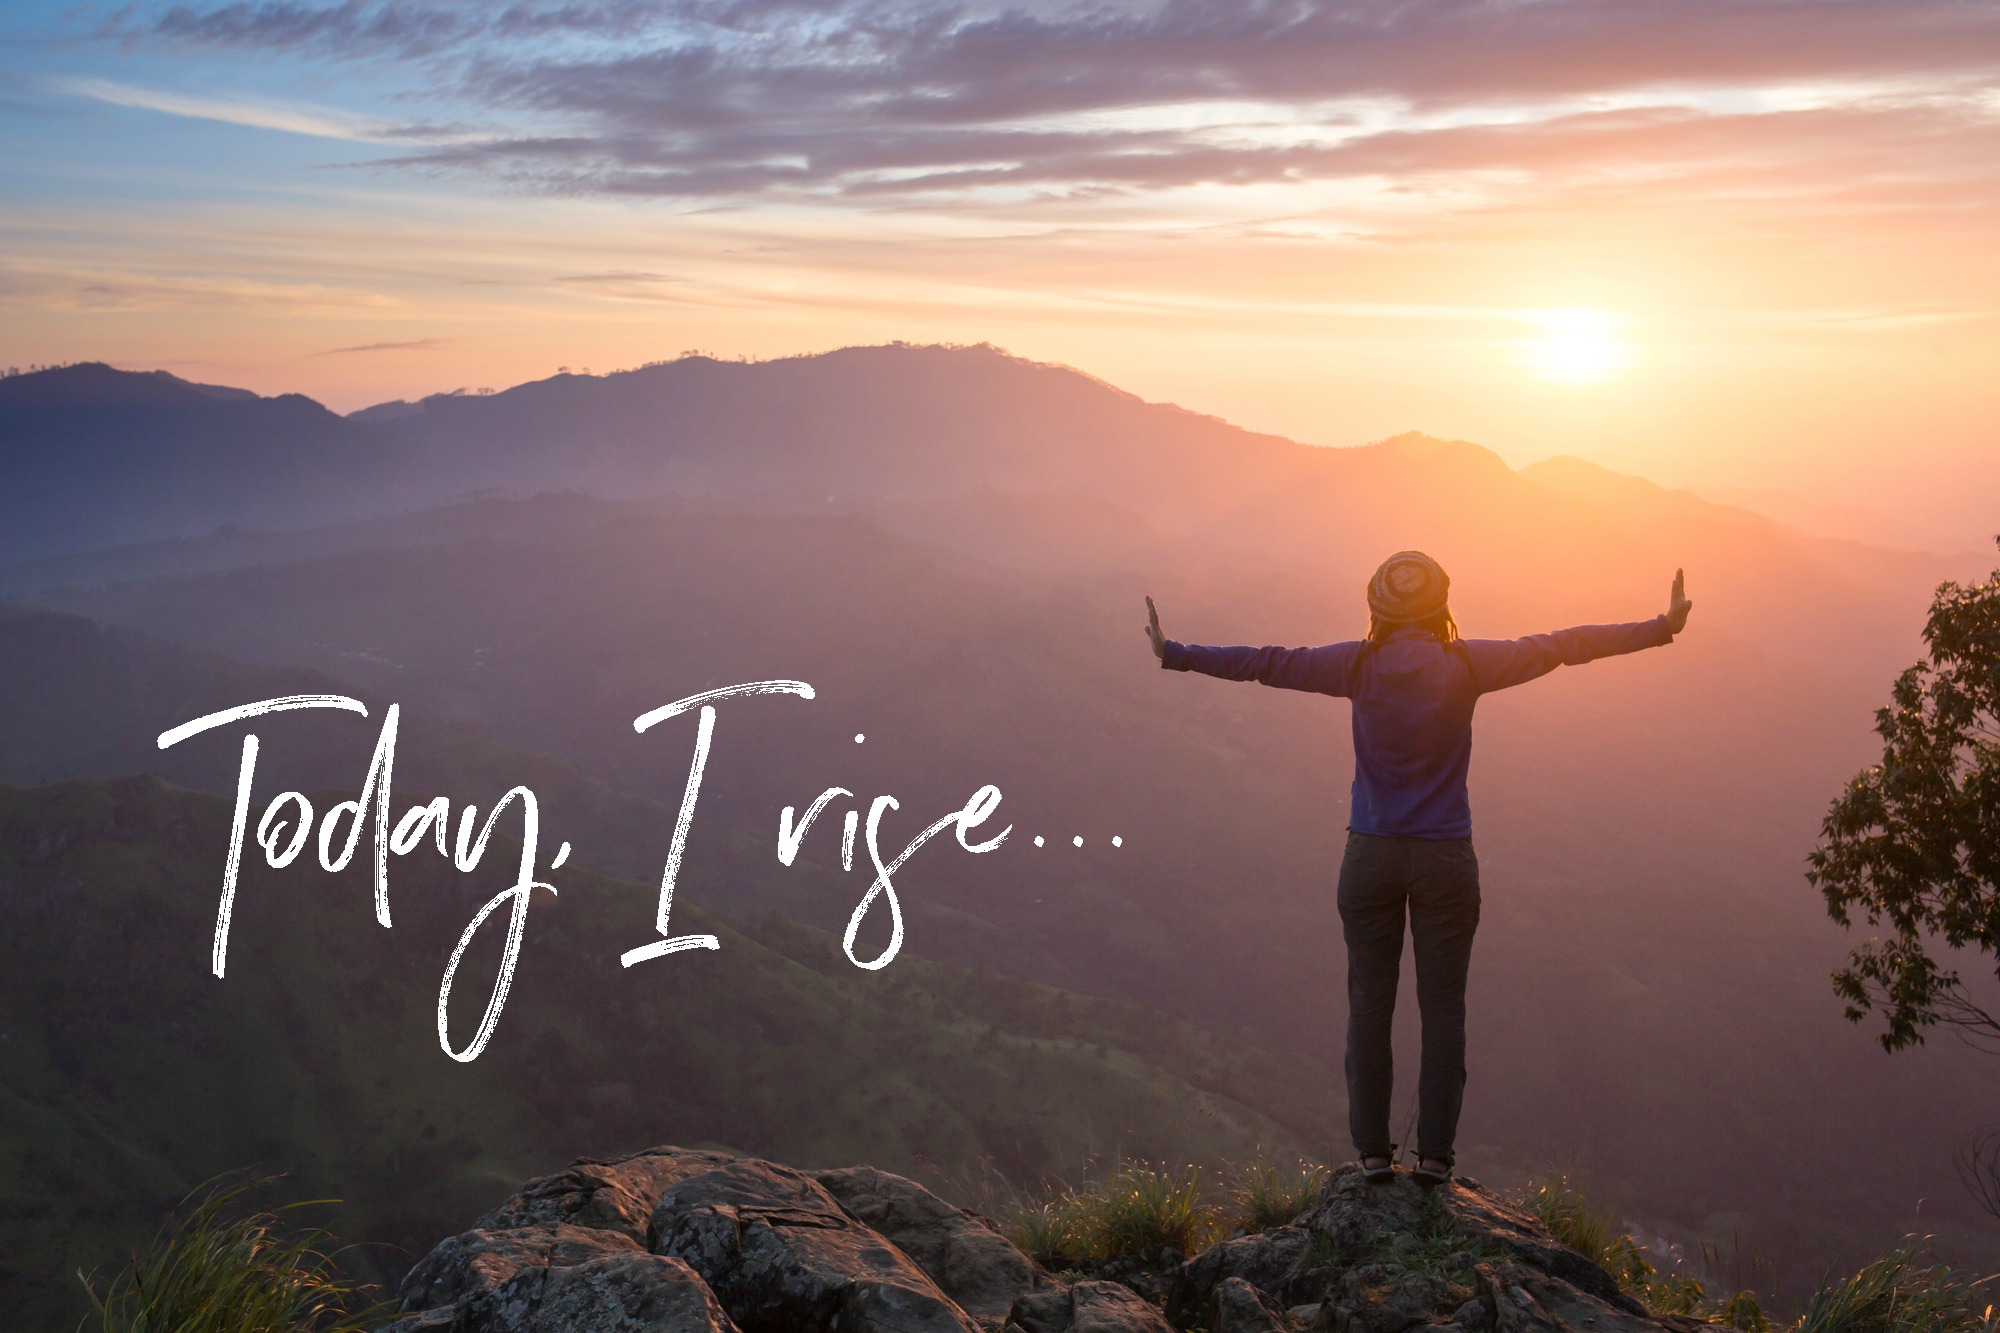 Today, I Rise. A video to inspire. Circle of Daydreams. www.circleofdaydreams.com